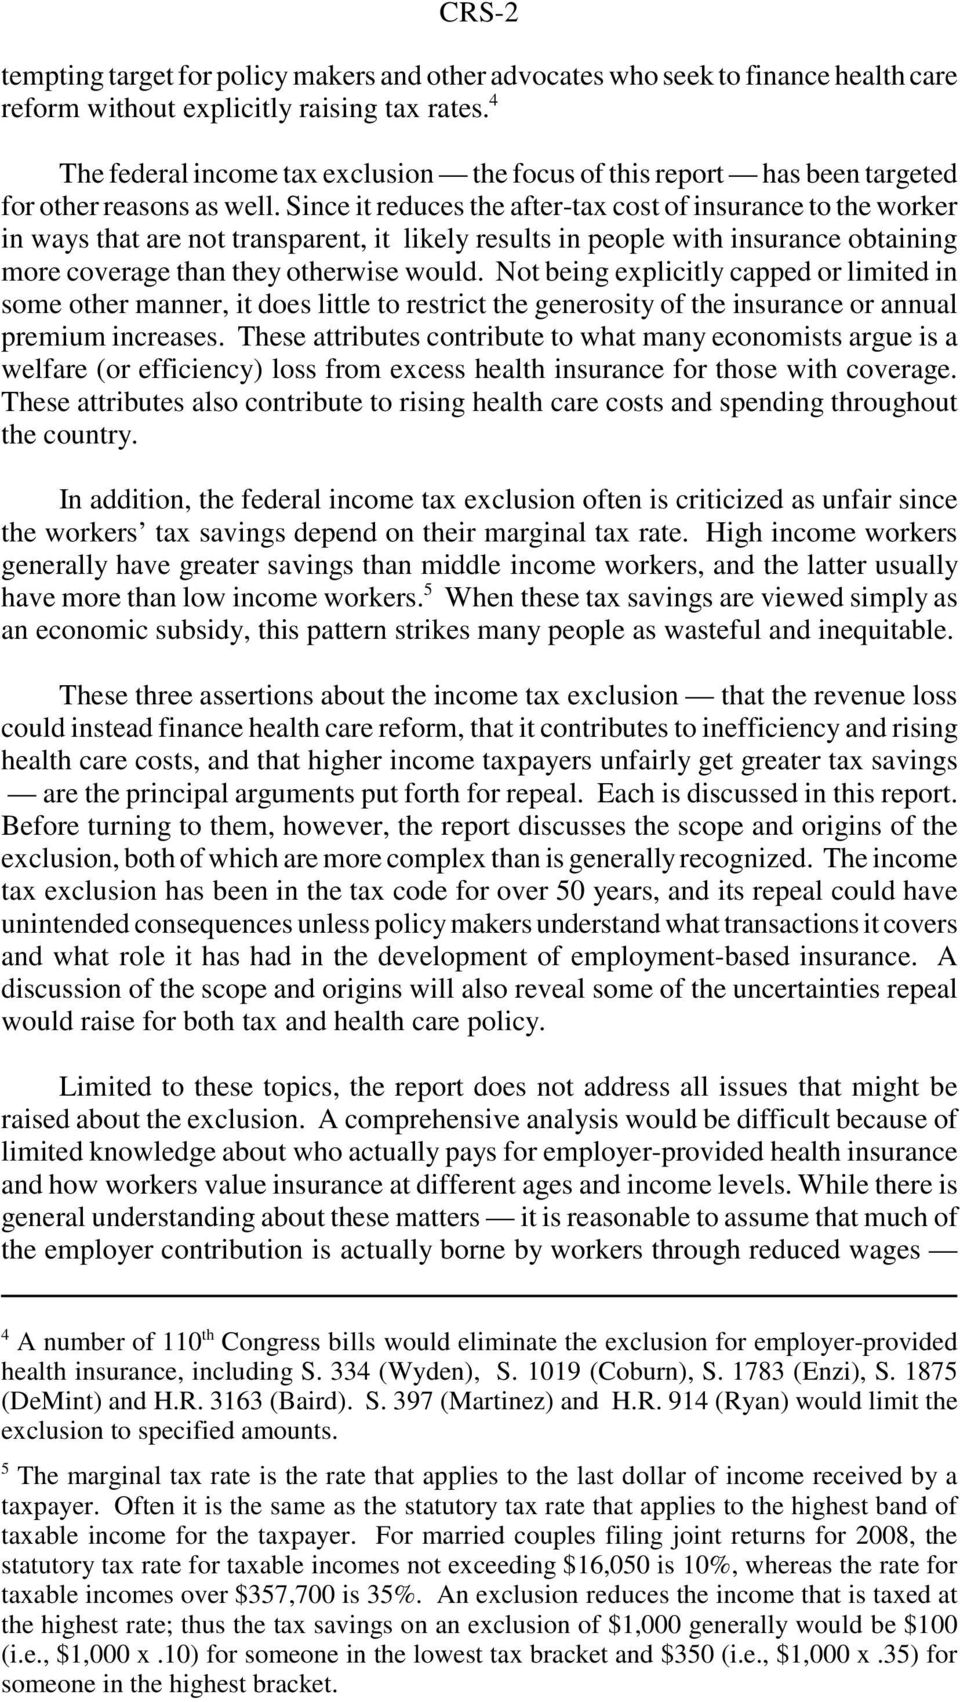 Since it reduces the after-tax cost of insurance to the worker in ways that are not transparent, it likely results in people with insurance obtaining more coverage than they otherwise would.